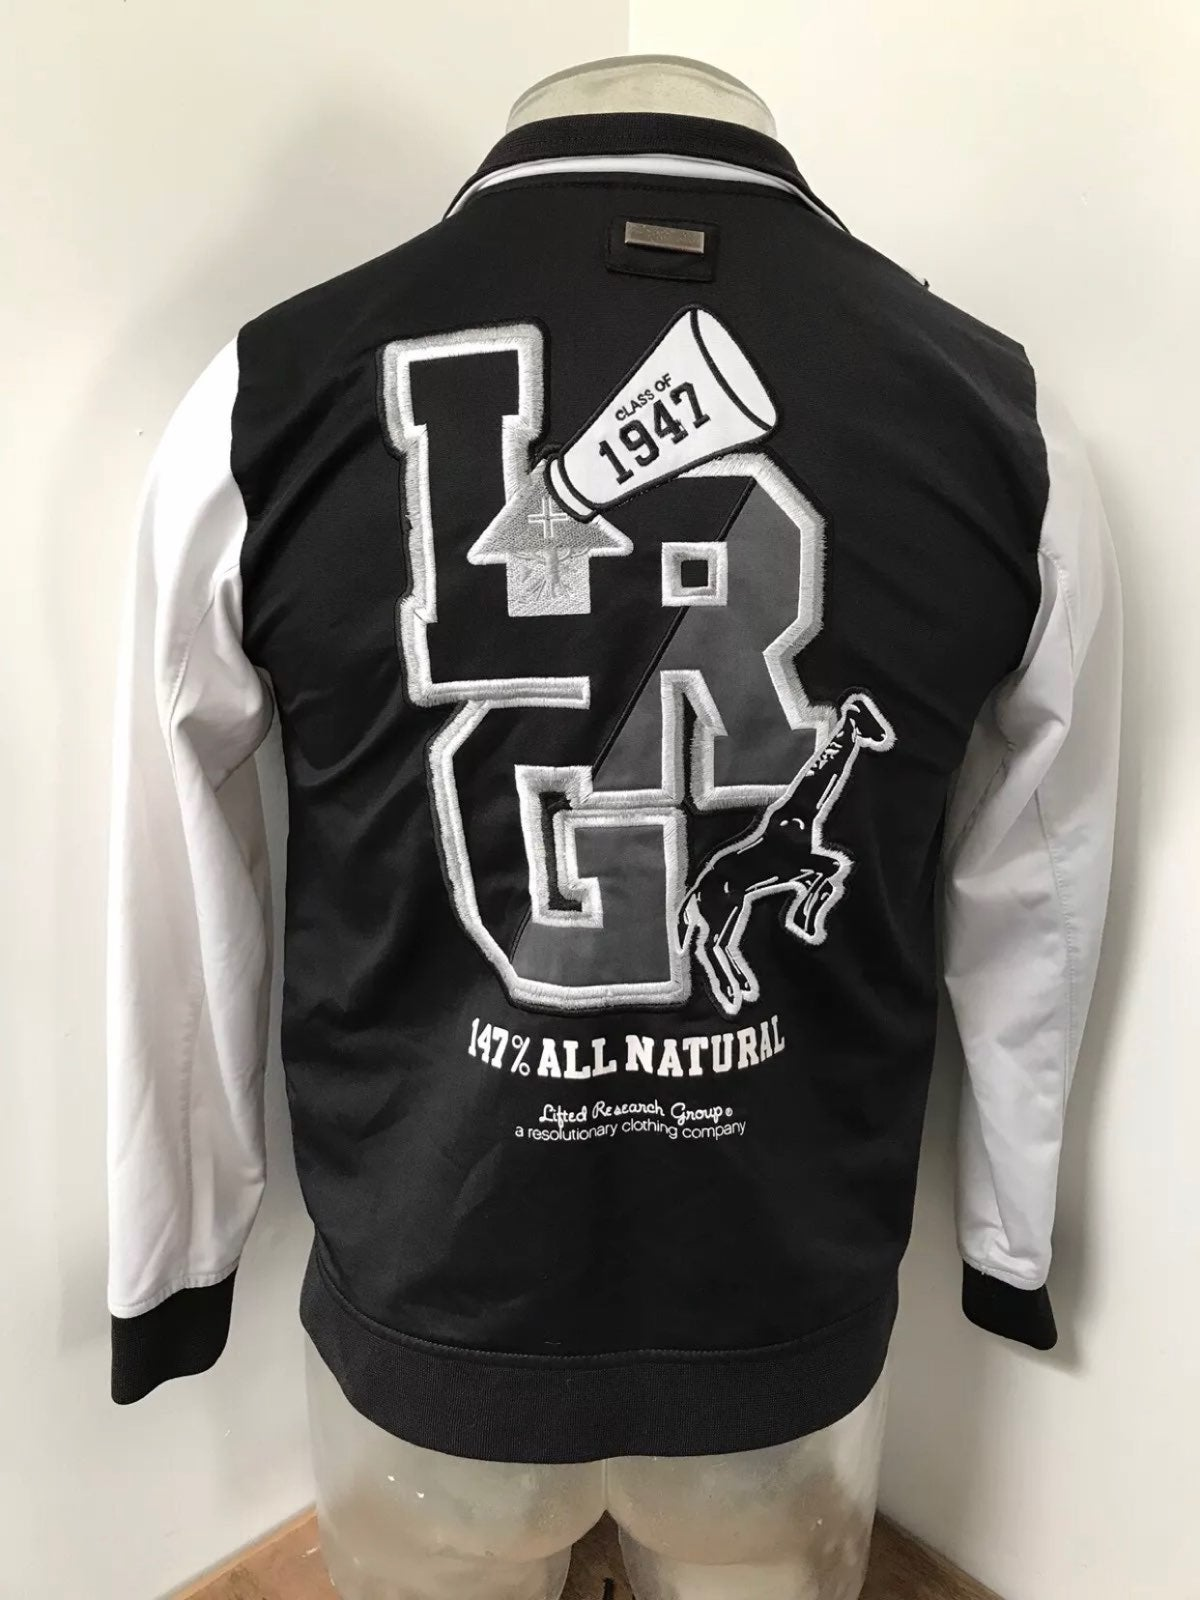 Vintage LIFTED RESEARCH GROUP Jacket